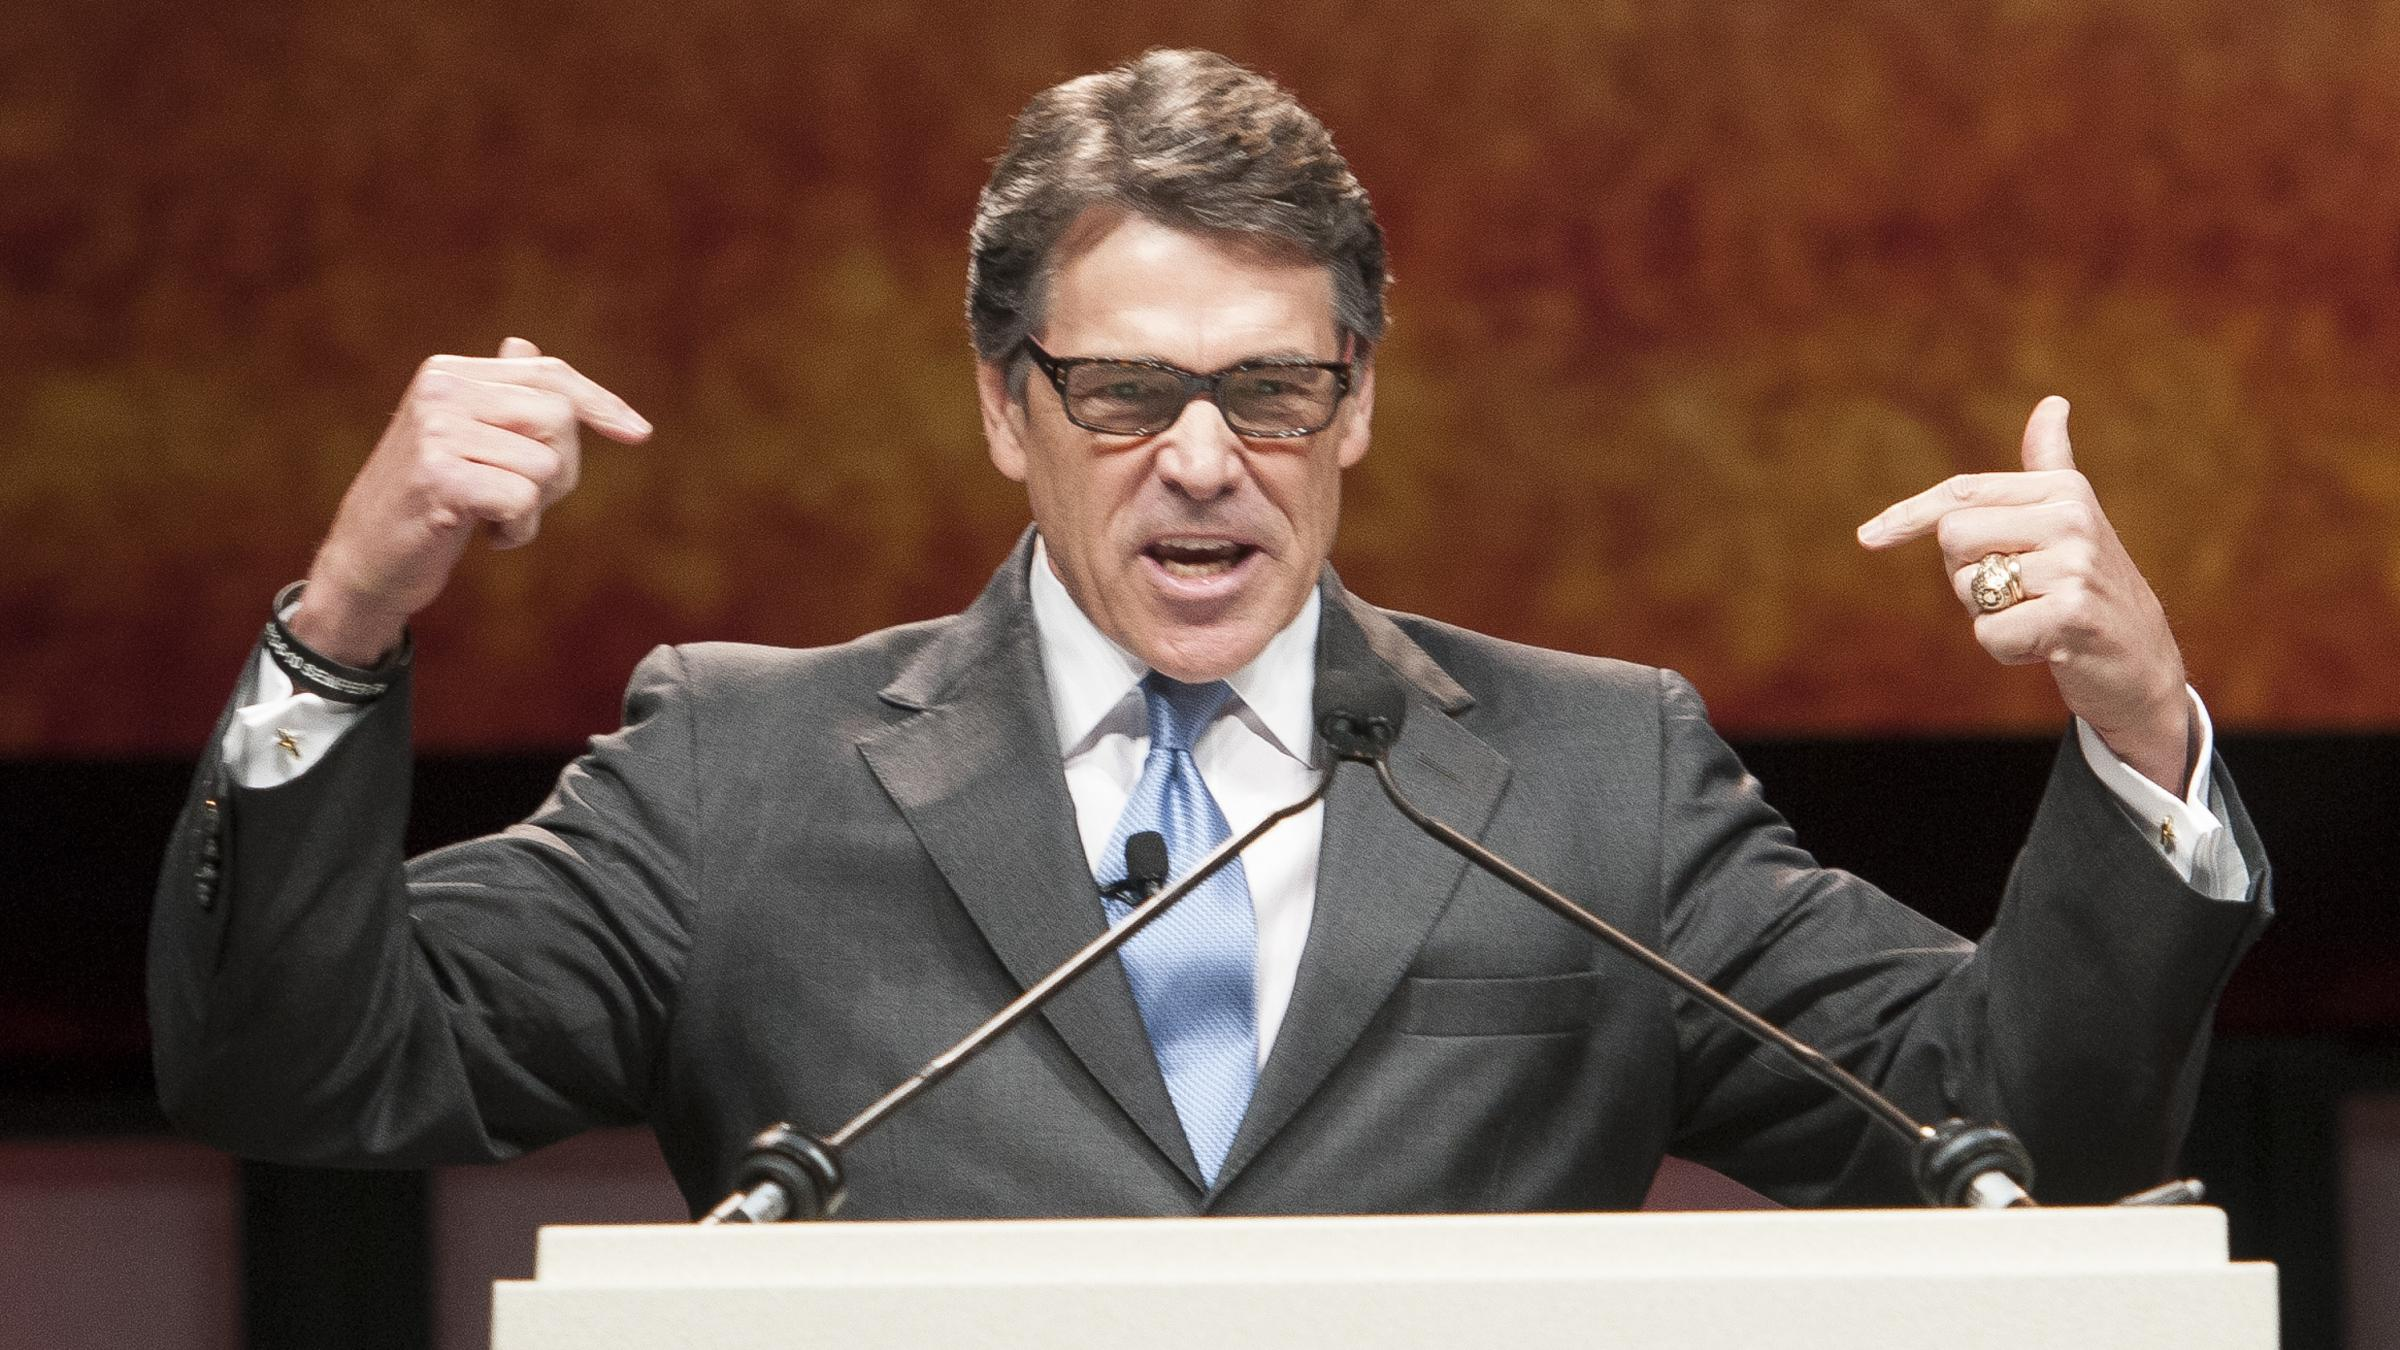 essay on governor rick perry job performance When gov rick perry leaves office next month, he'll wrap up a three-decade stretch in state elective office that concluded with his being the longest-serving governor in texas history.